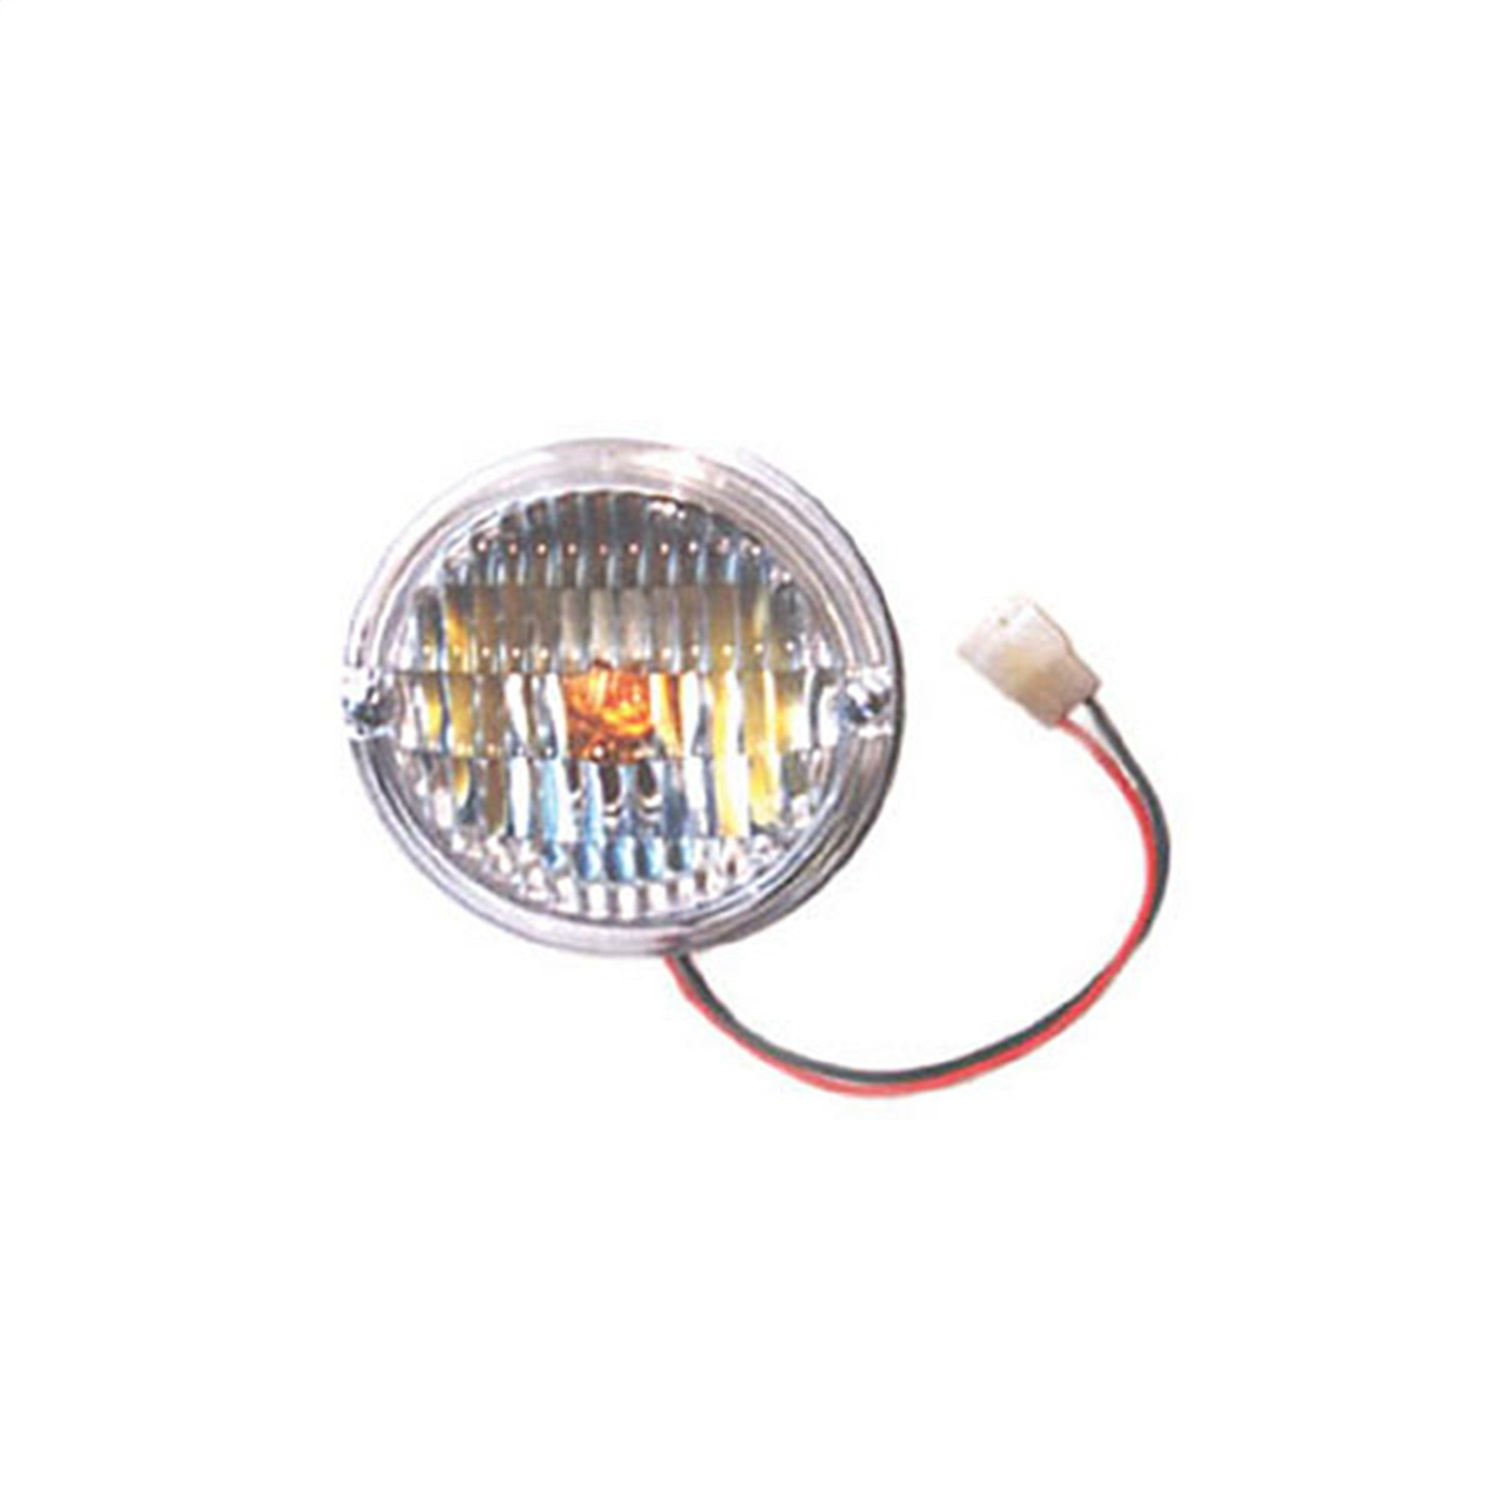 Omix Ada 1240506 Parking Turn Signal Light Assembly Fits 76 86 Cj7 Engine Wiring Image Is Loading 12405 06